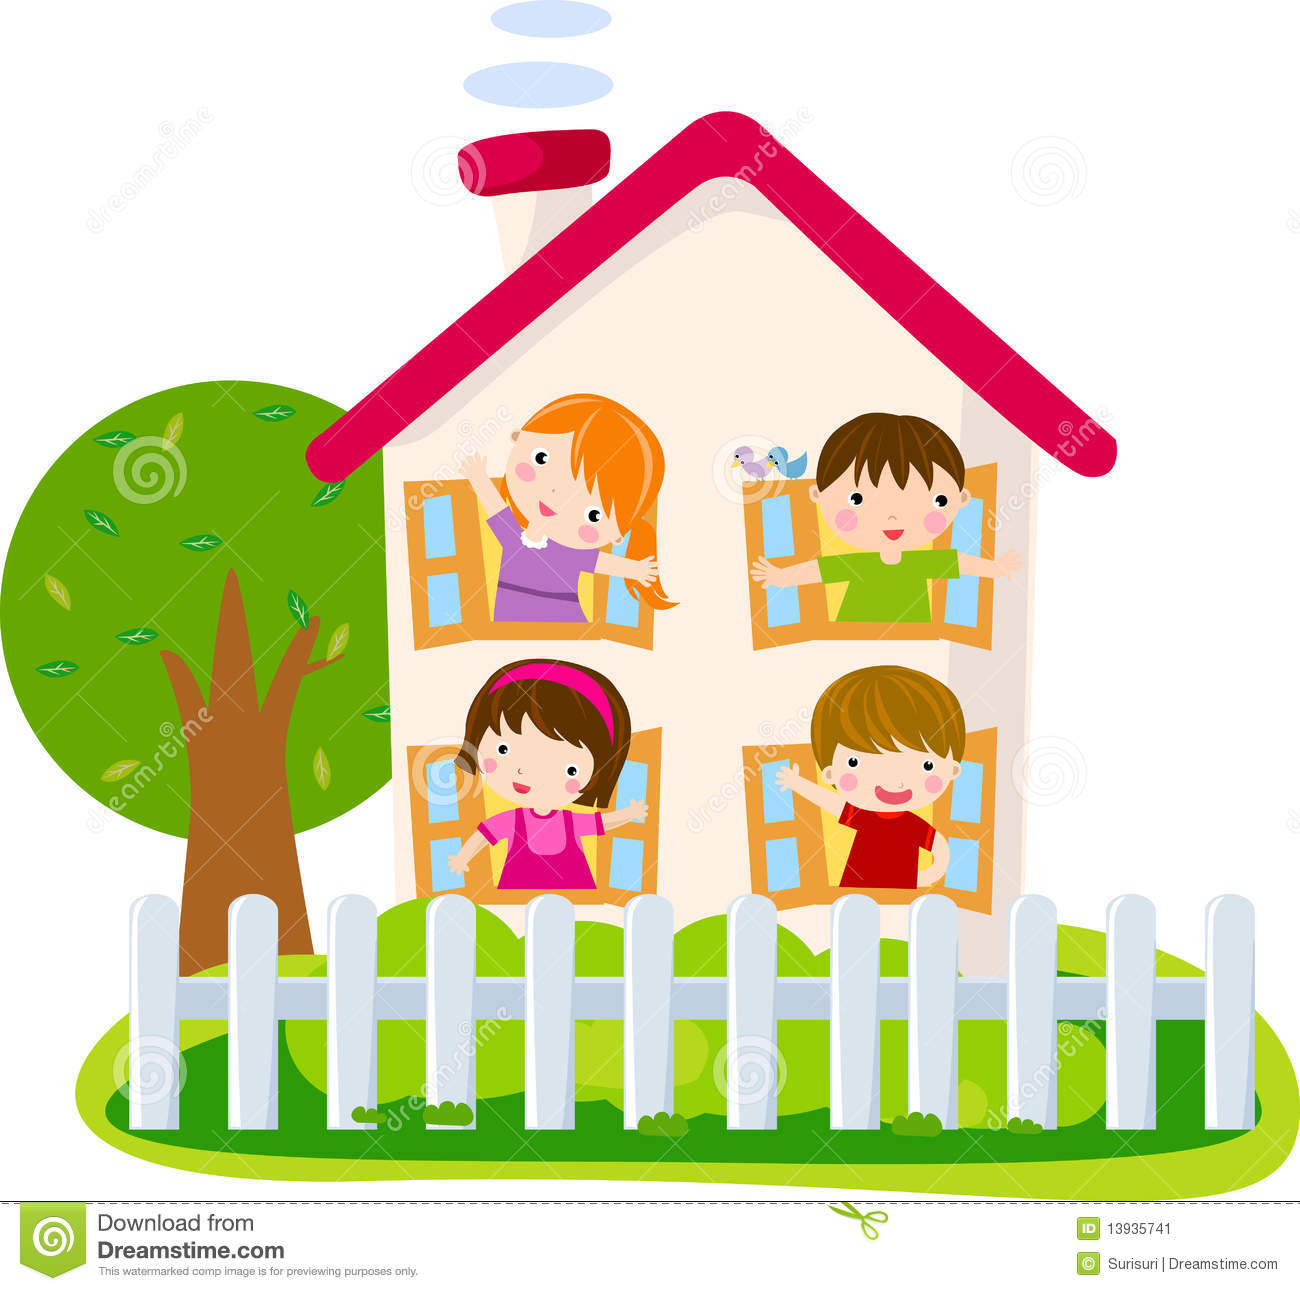 Cute house clipart hxmhje clipart suggest for Cute house images